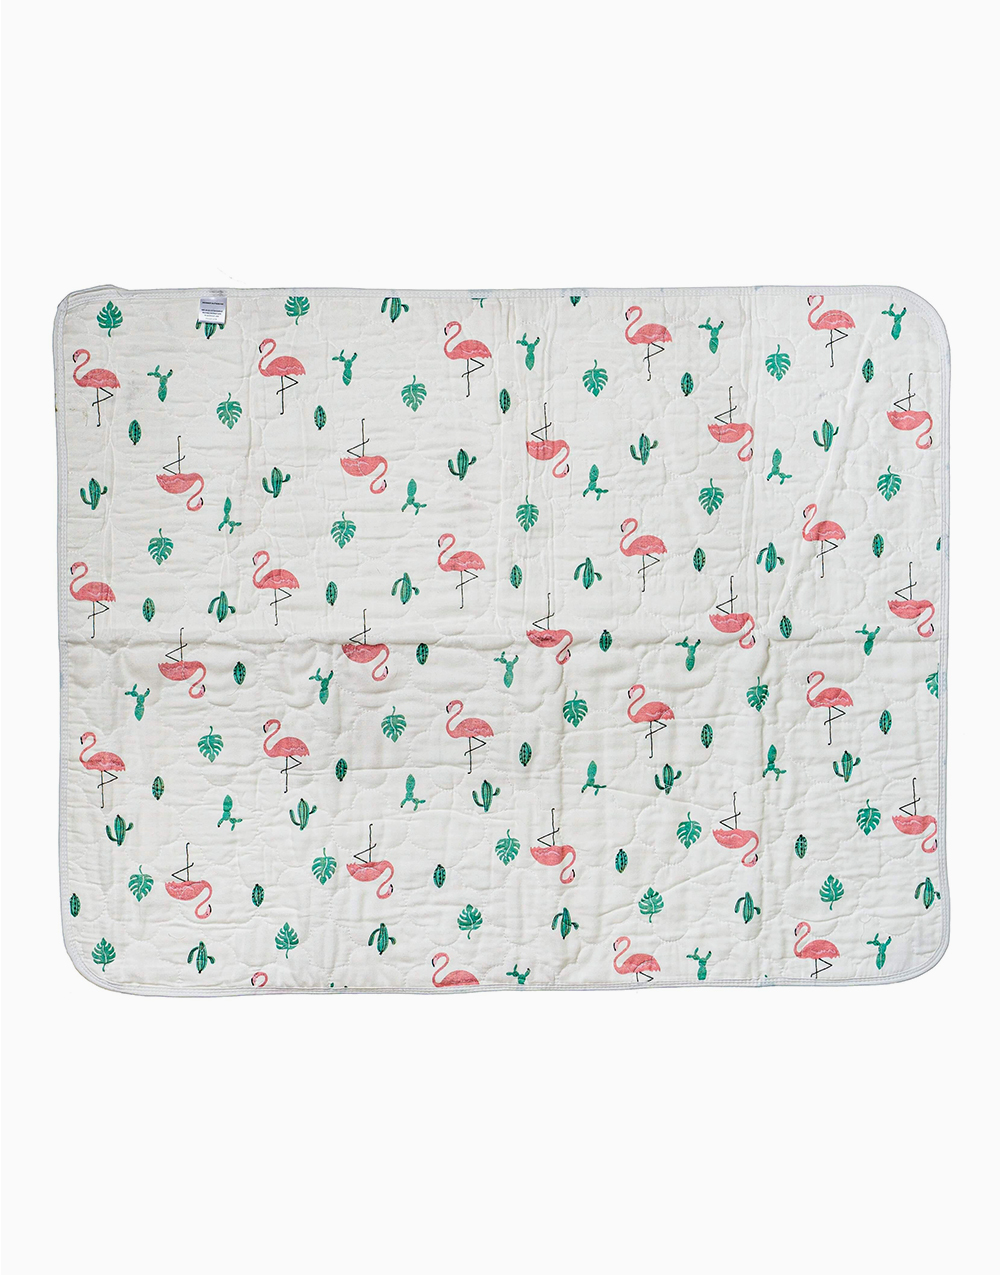 Water Absorbent Bedmats (Flamingos) by Swaddies PH